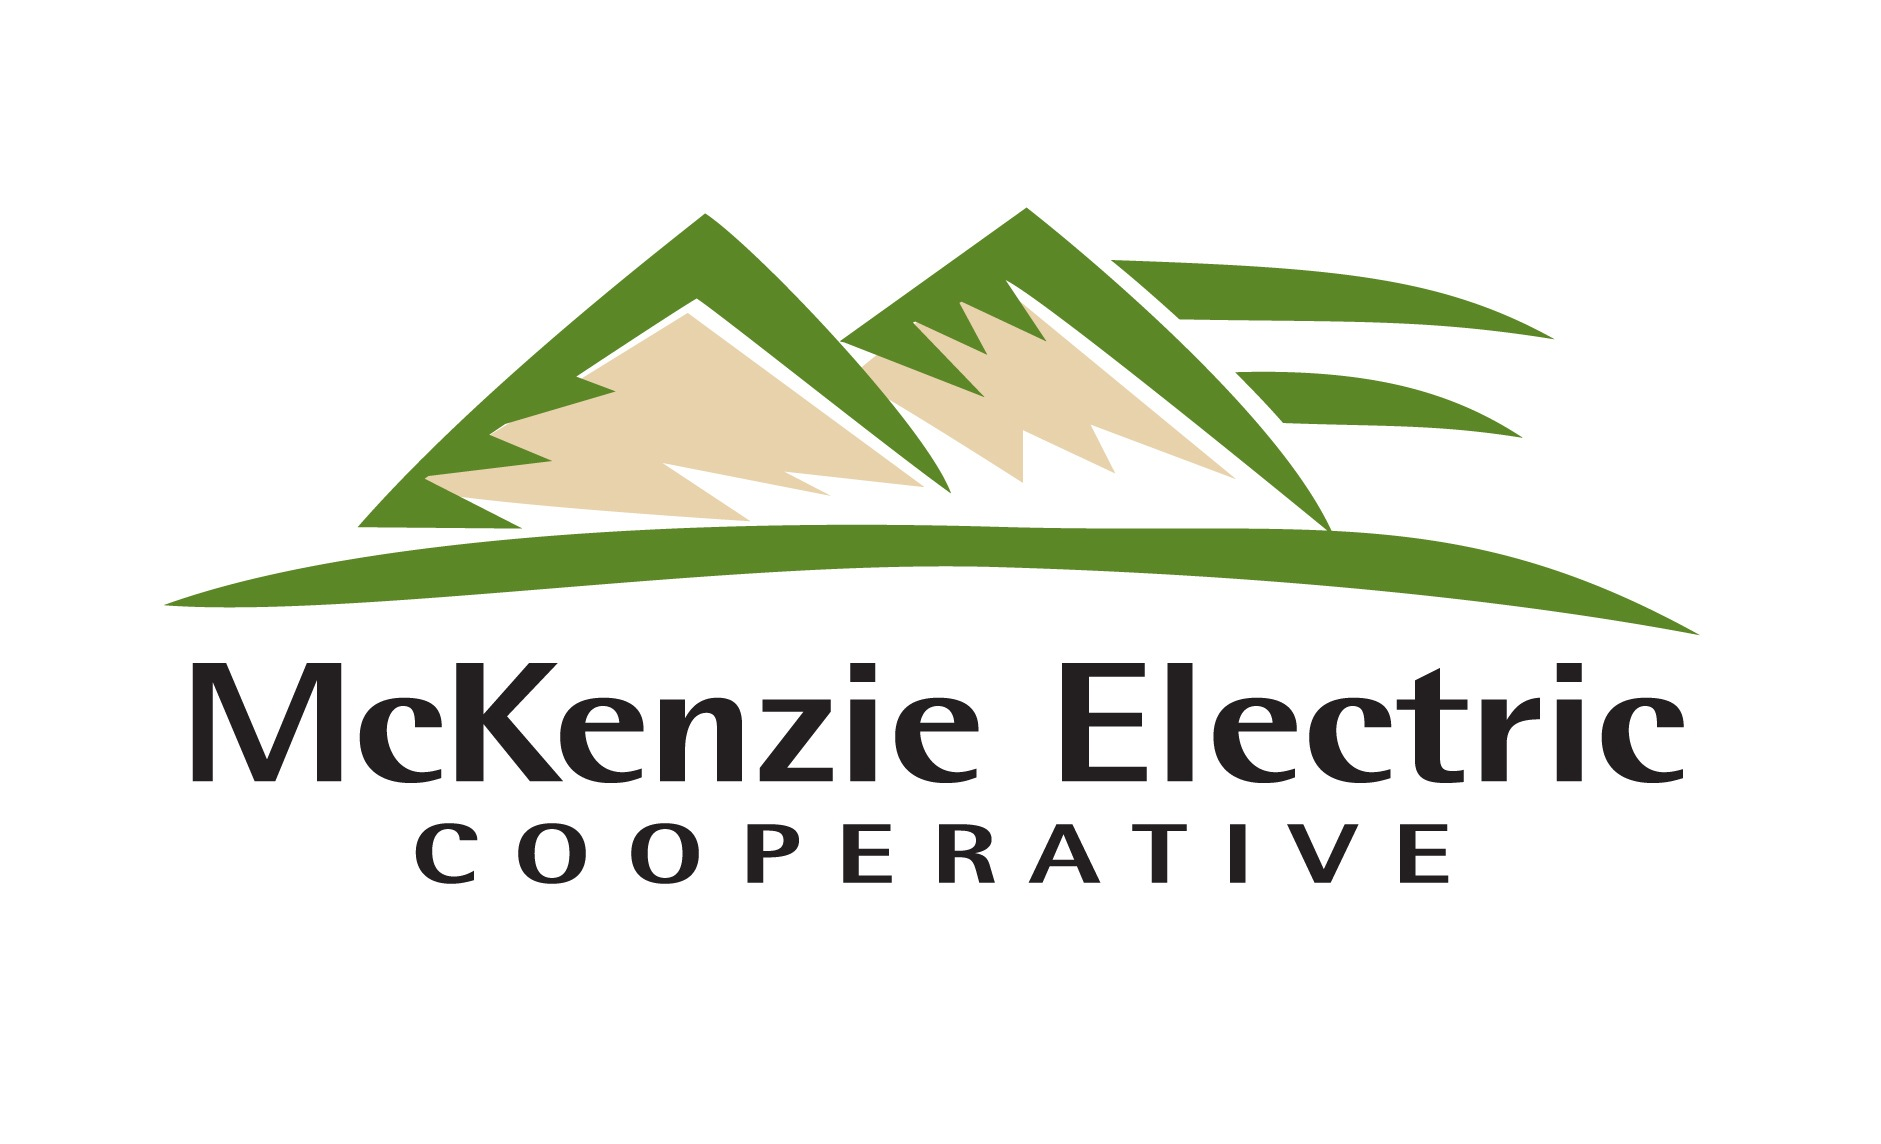 McKenzie Electric